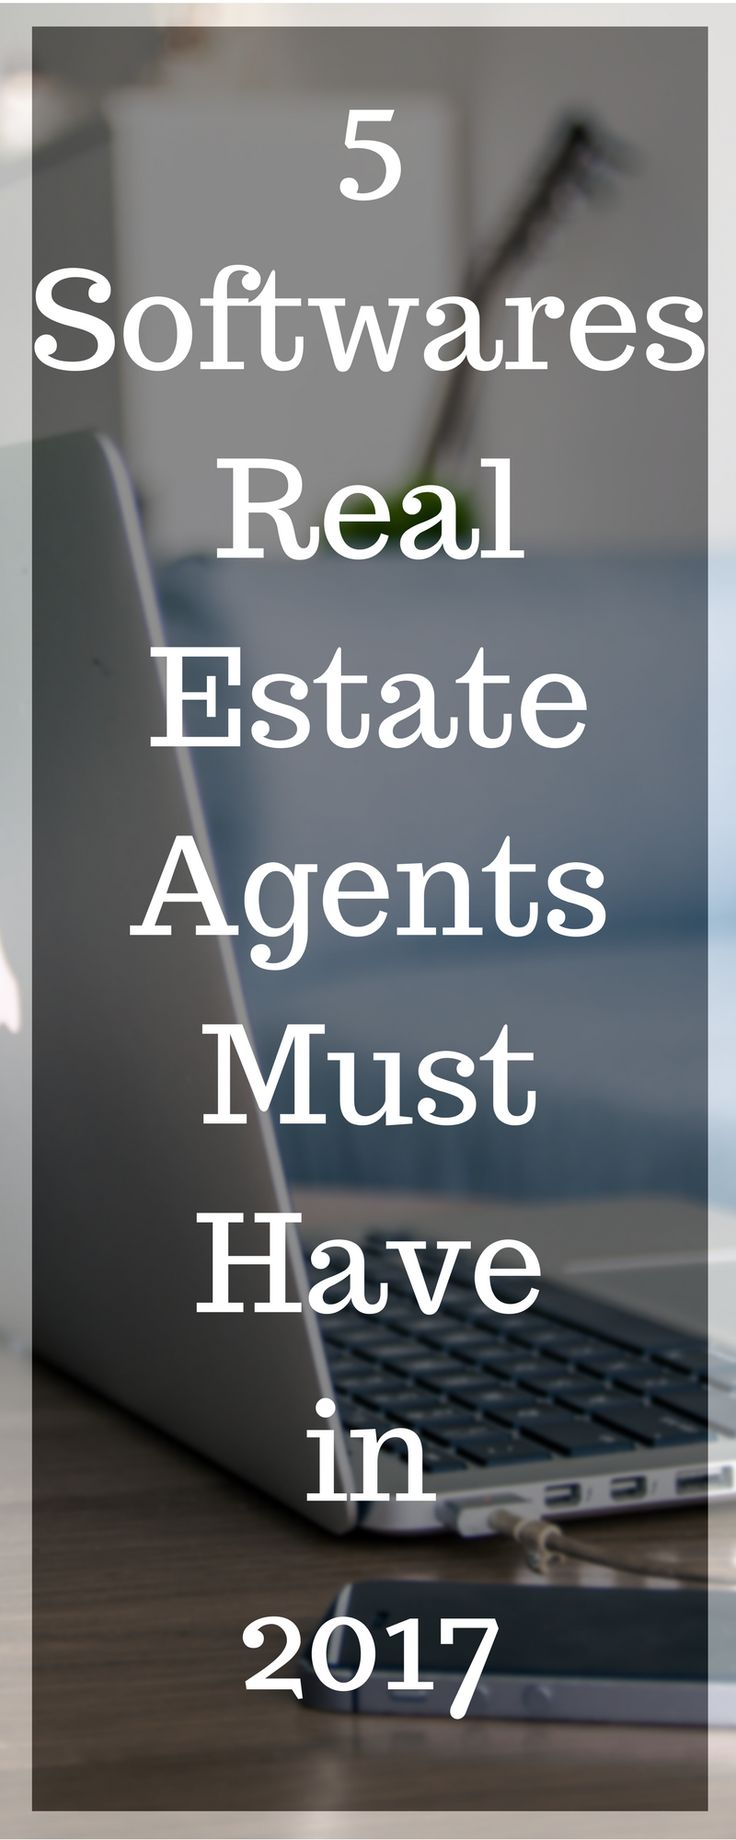 5 Softwares Real Estate Agents Must Have in 2017 - If you're a Real Estate Agent looking to up your game in the field by staying organized, keeping up with all your leads, and close more sales, then this list is for you. Lets Begin.